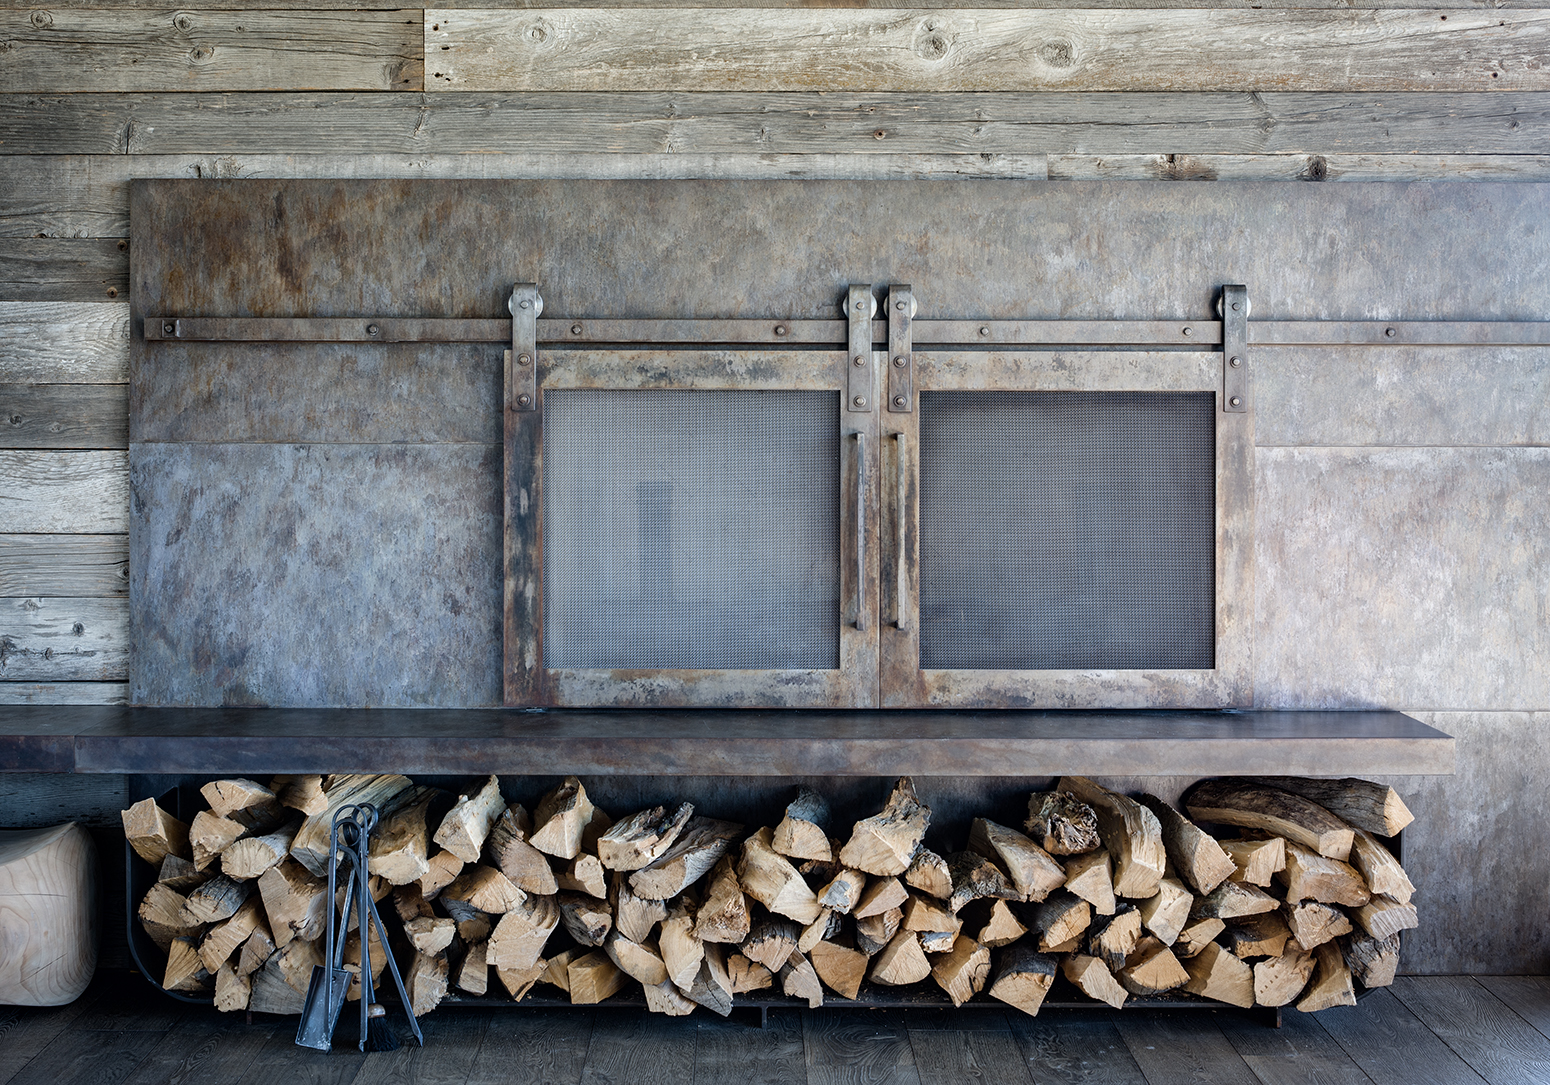 This is a photograph of a custom built firepalce in a mountain rustic home near Park City, UT. The fireplace is encased in distessed steel and surrounded by a wall clad in reclaimed timber.